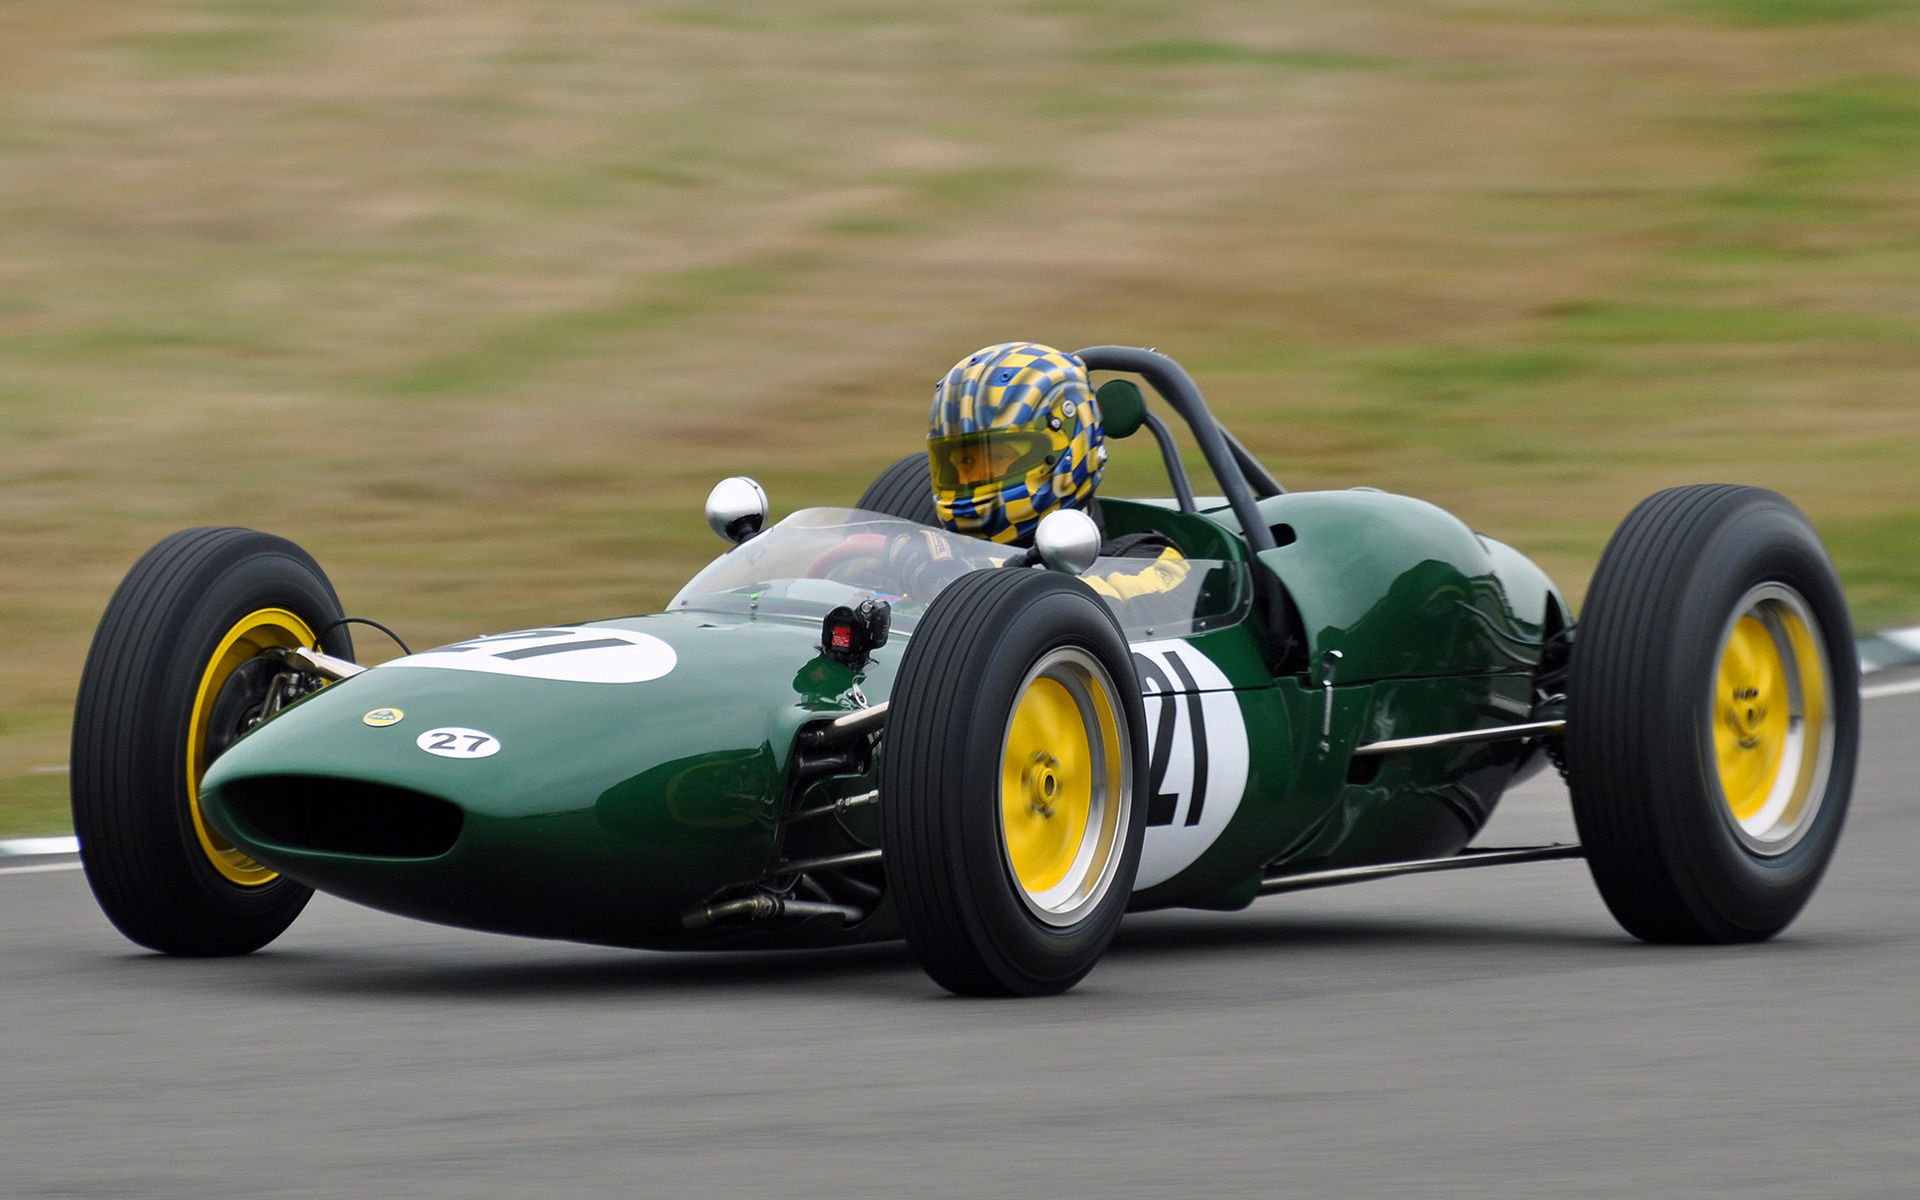 1961 Lotus 20 Wallpapers And Hd Images Car Pixel Images, Photos, Reviews